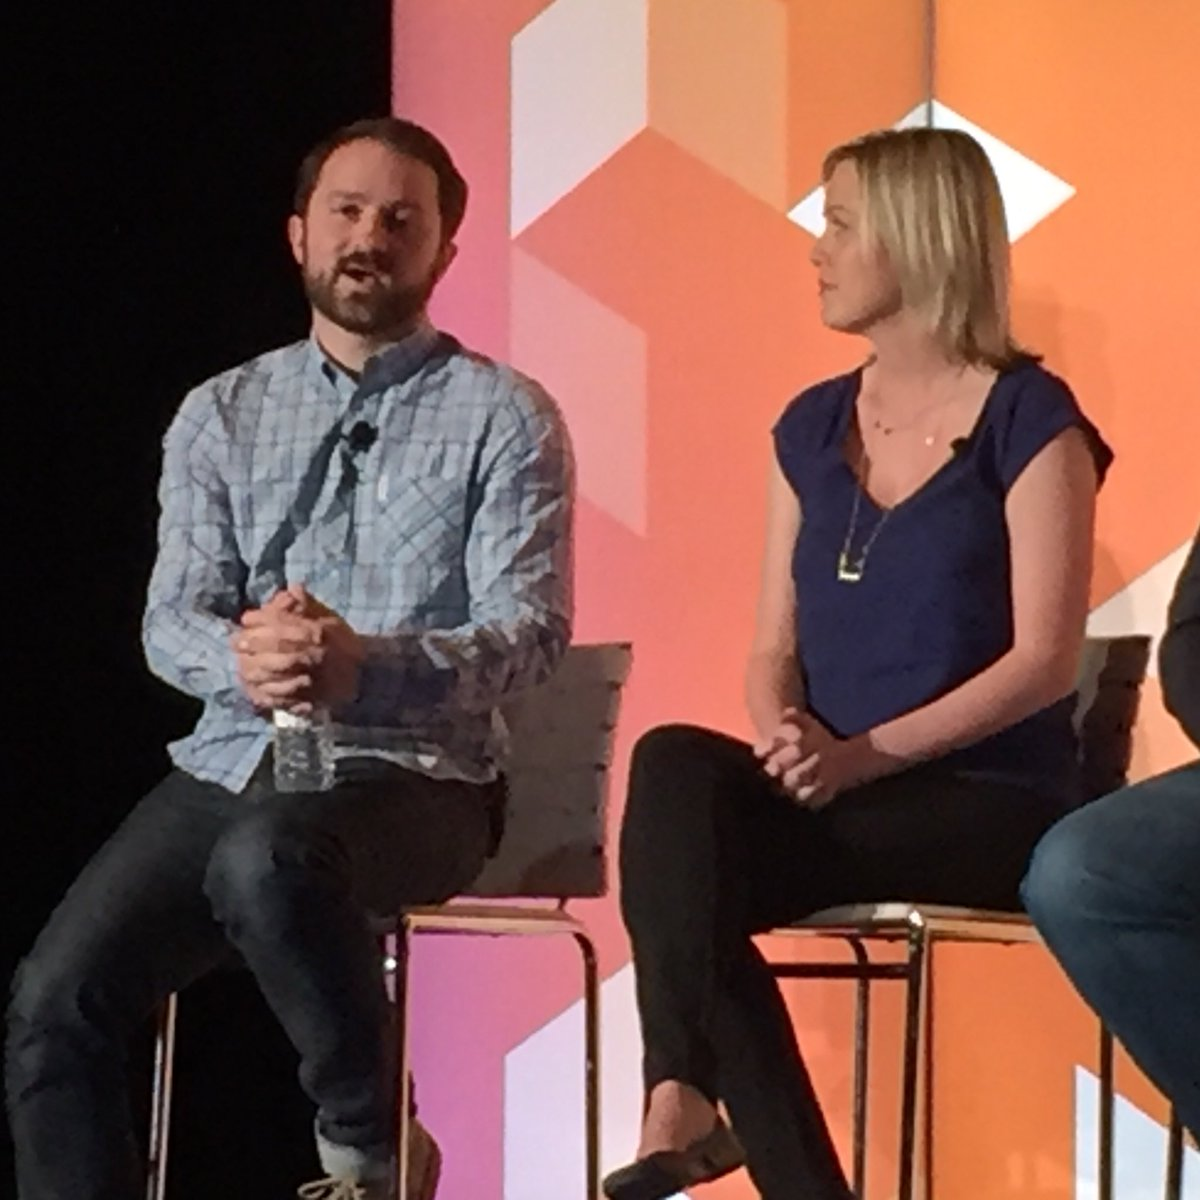 annhud: Search isn't a natural discovery mechanism on mobile - it's push. Be the reason they search. #mobile #MagentoImagine https://t.co/KMWYpCUS6p